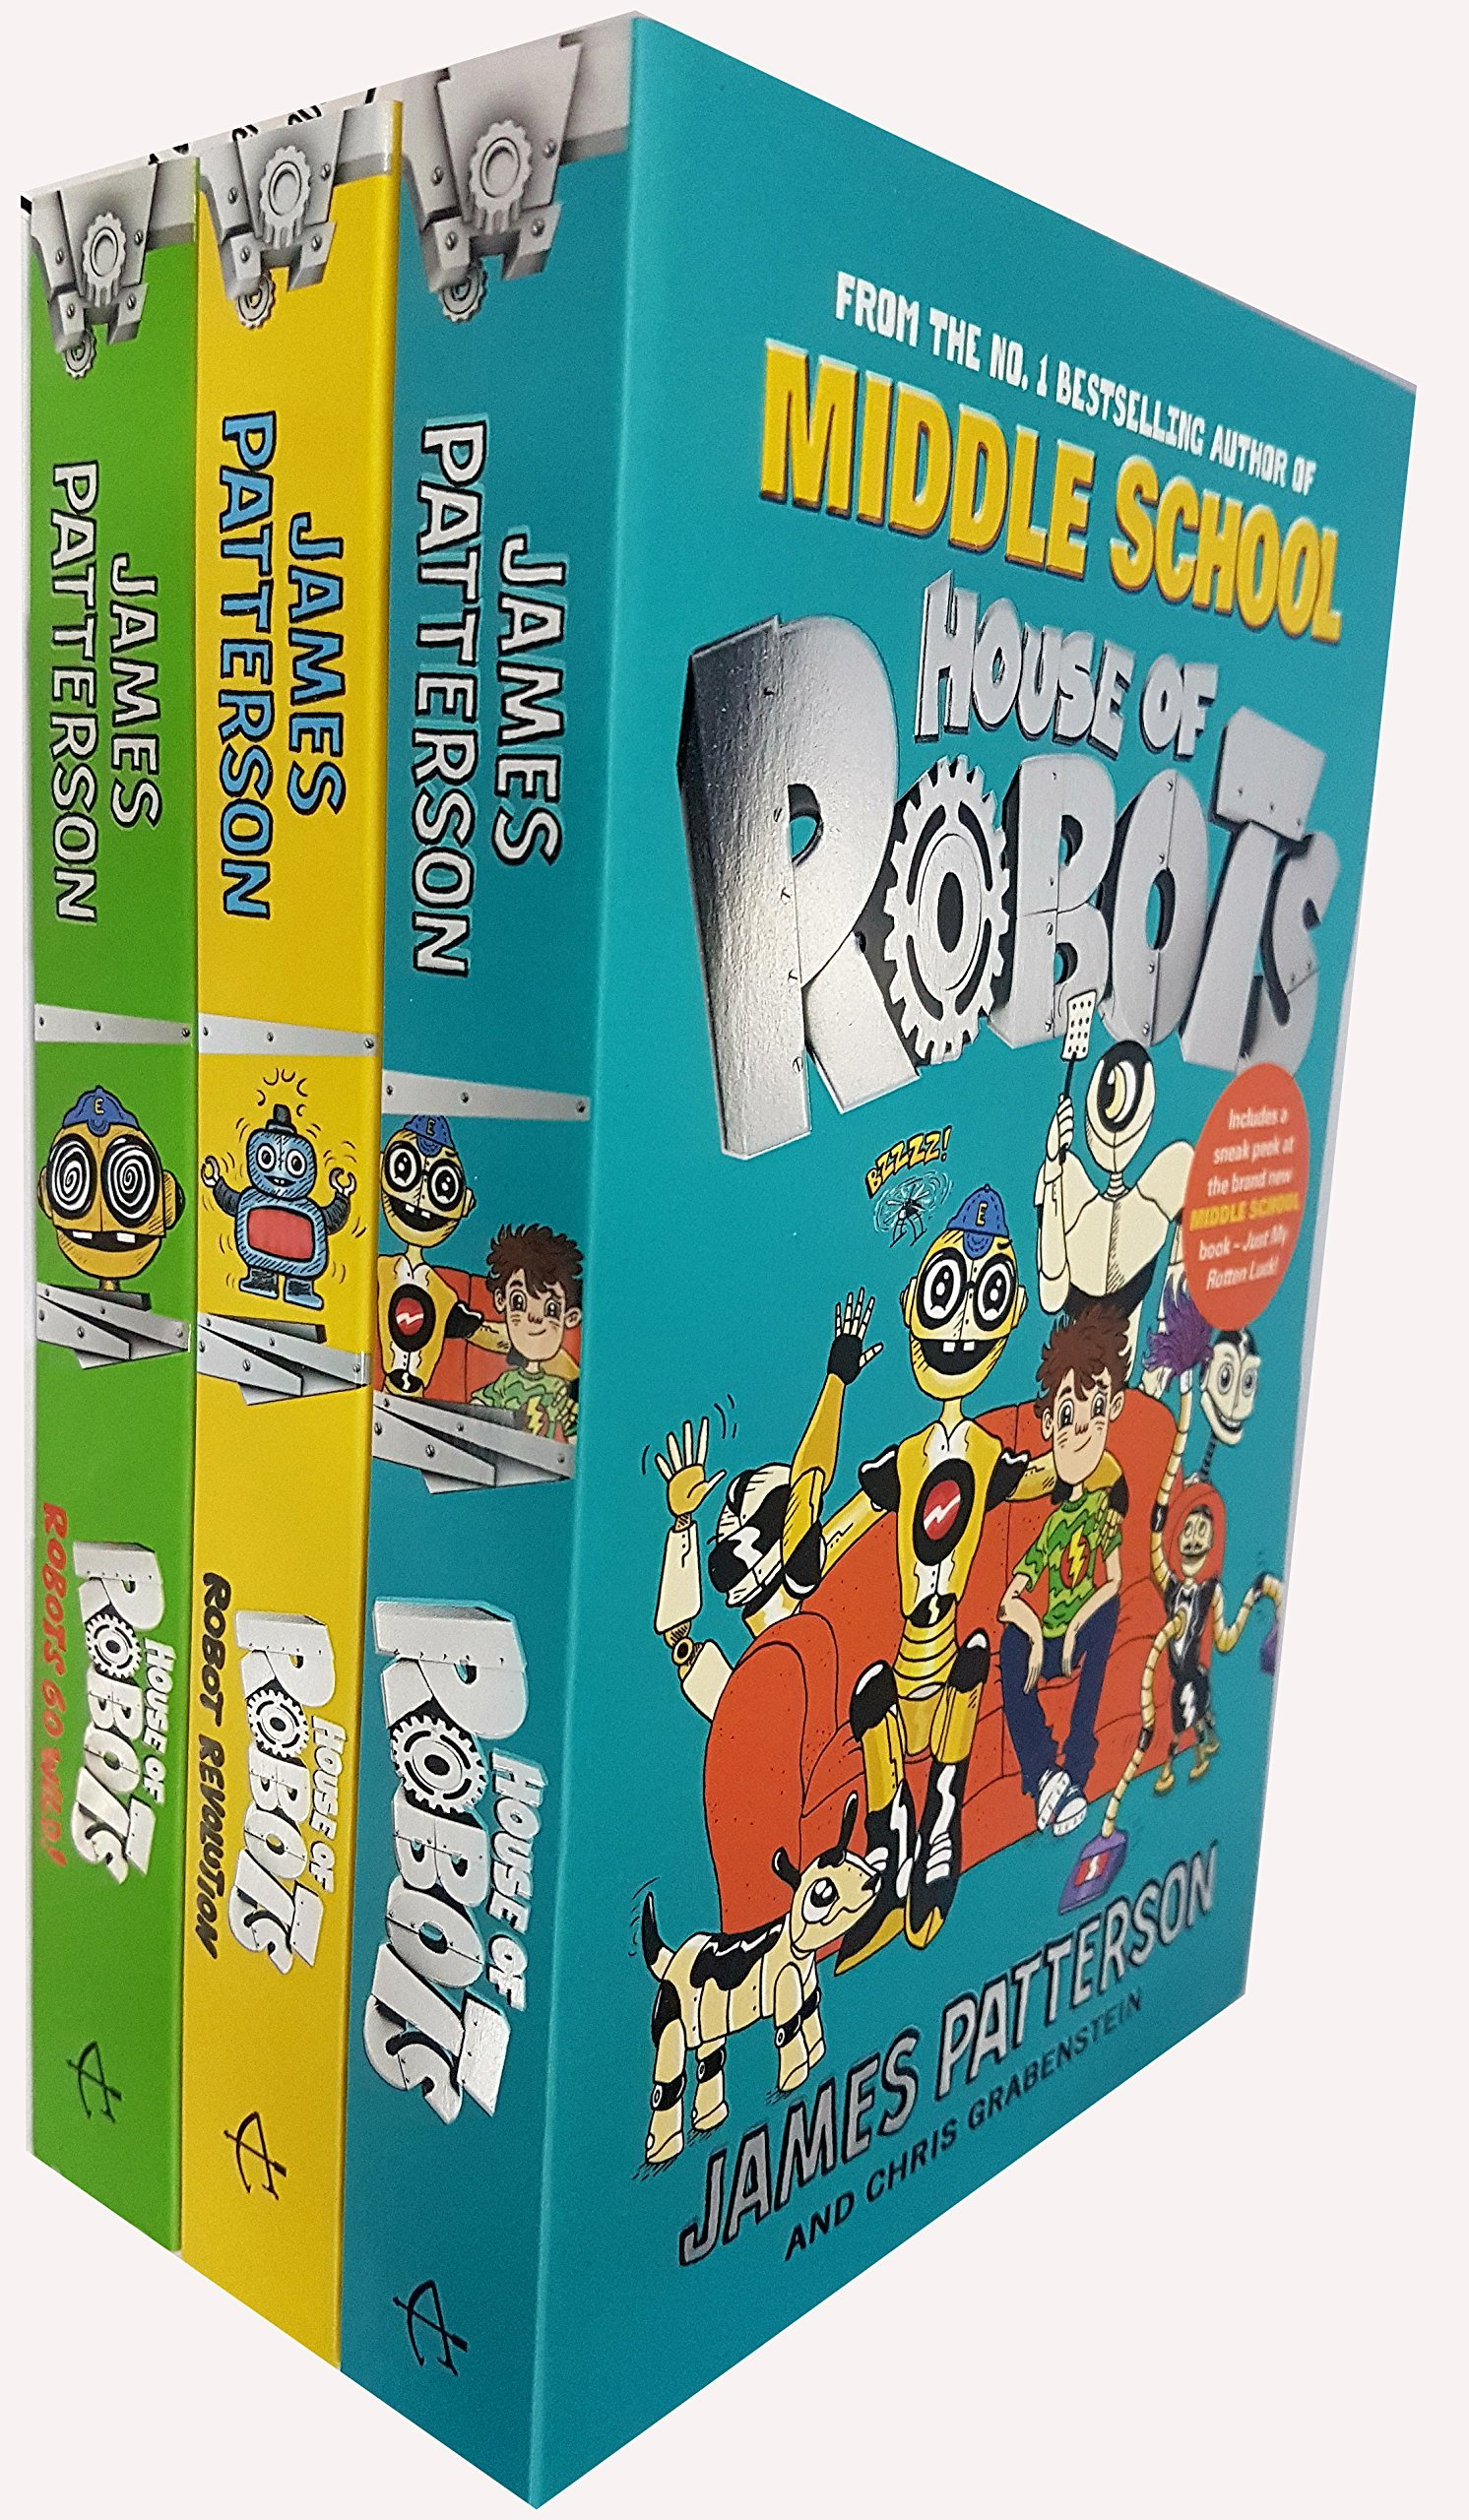 House of Robots (House of Robots, Book 1)